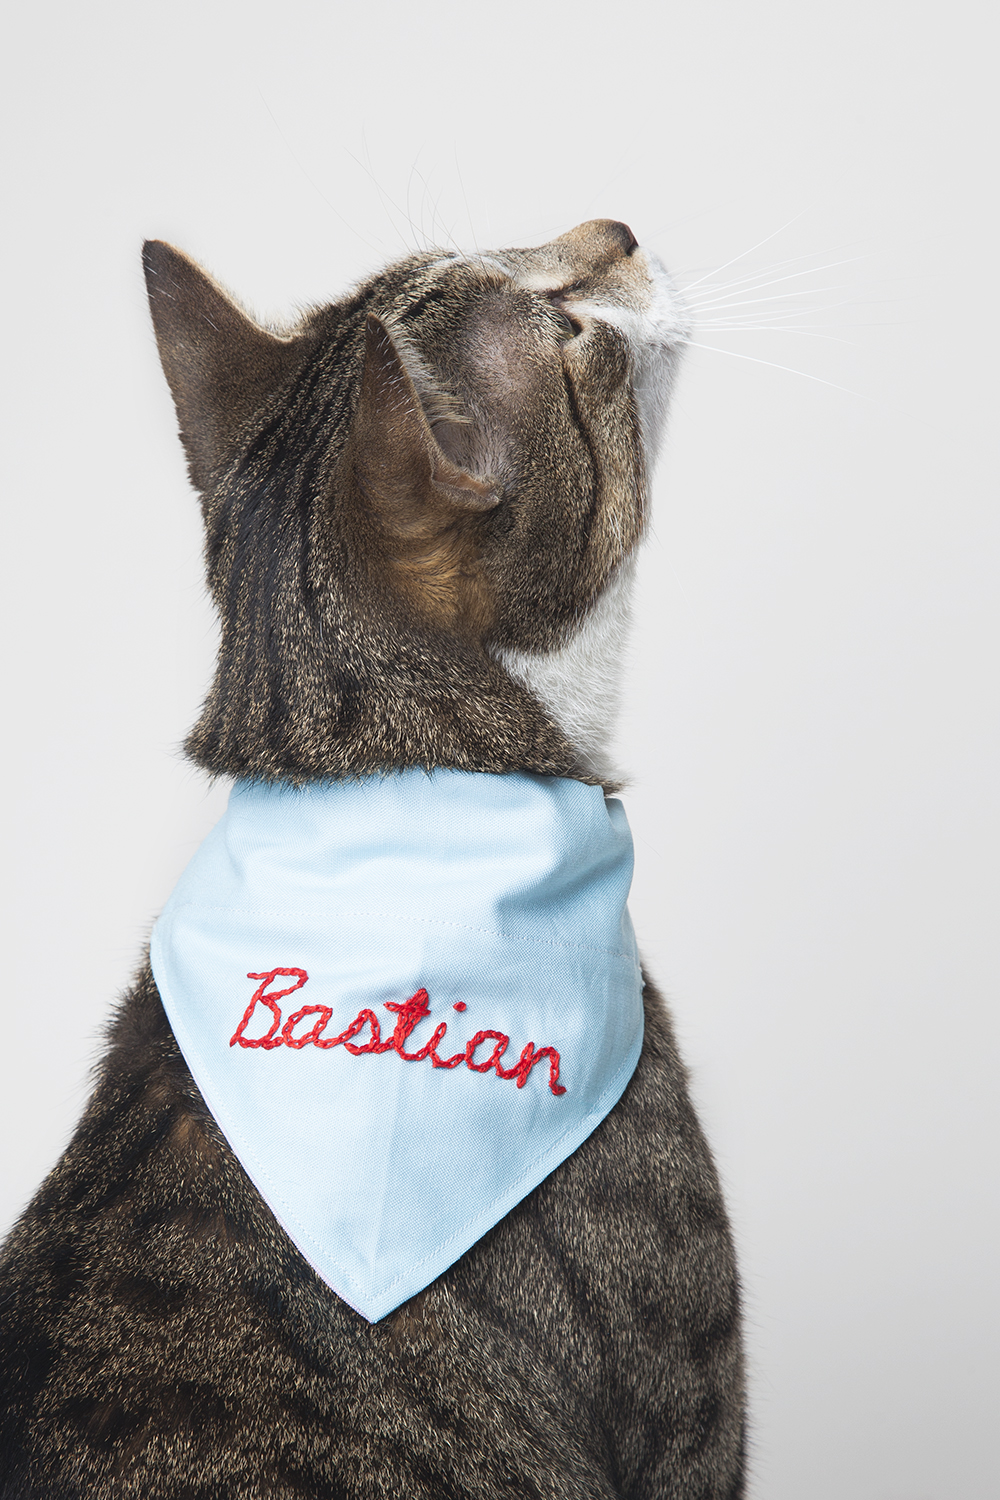 design-sponge-pet-bandana-cat-1381.jpg